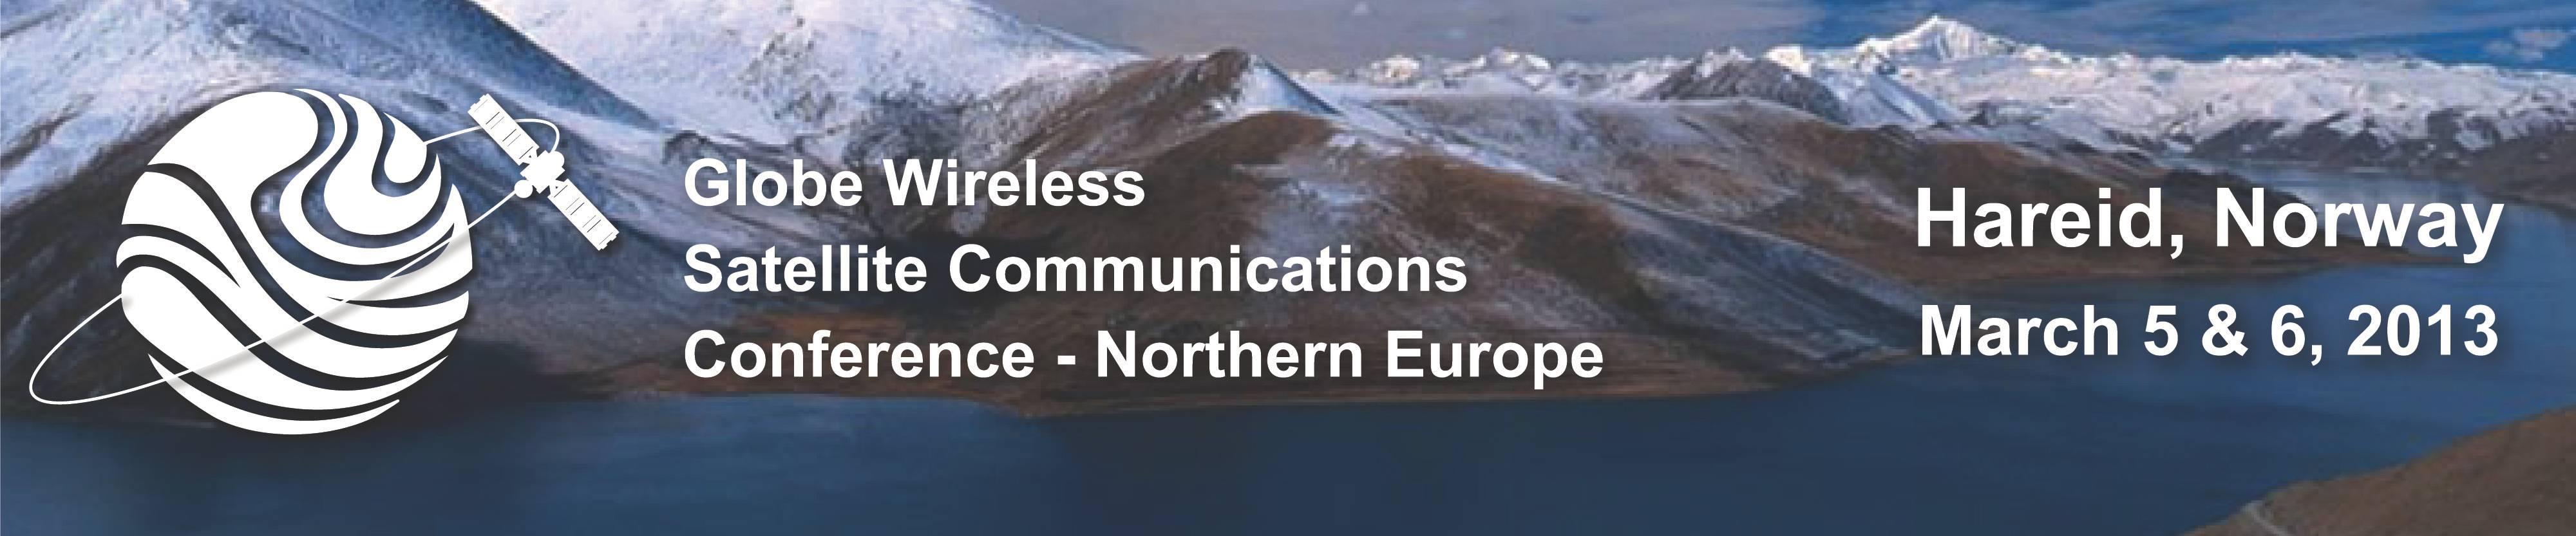 Globe Wireless Satellite Communications Conference - Northern Europe Banner.jpg